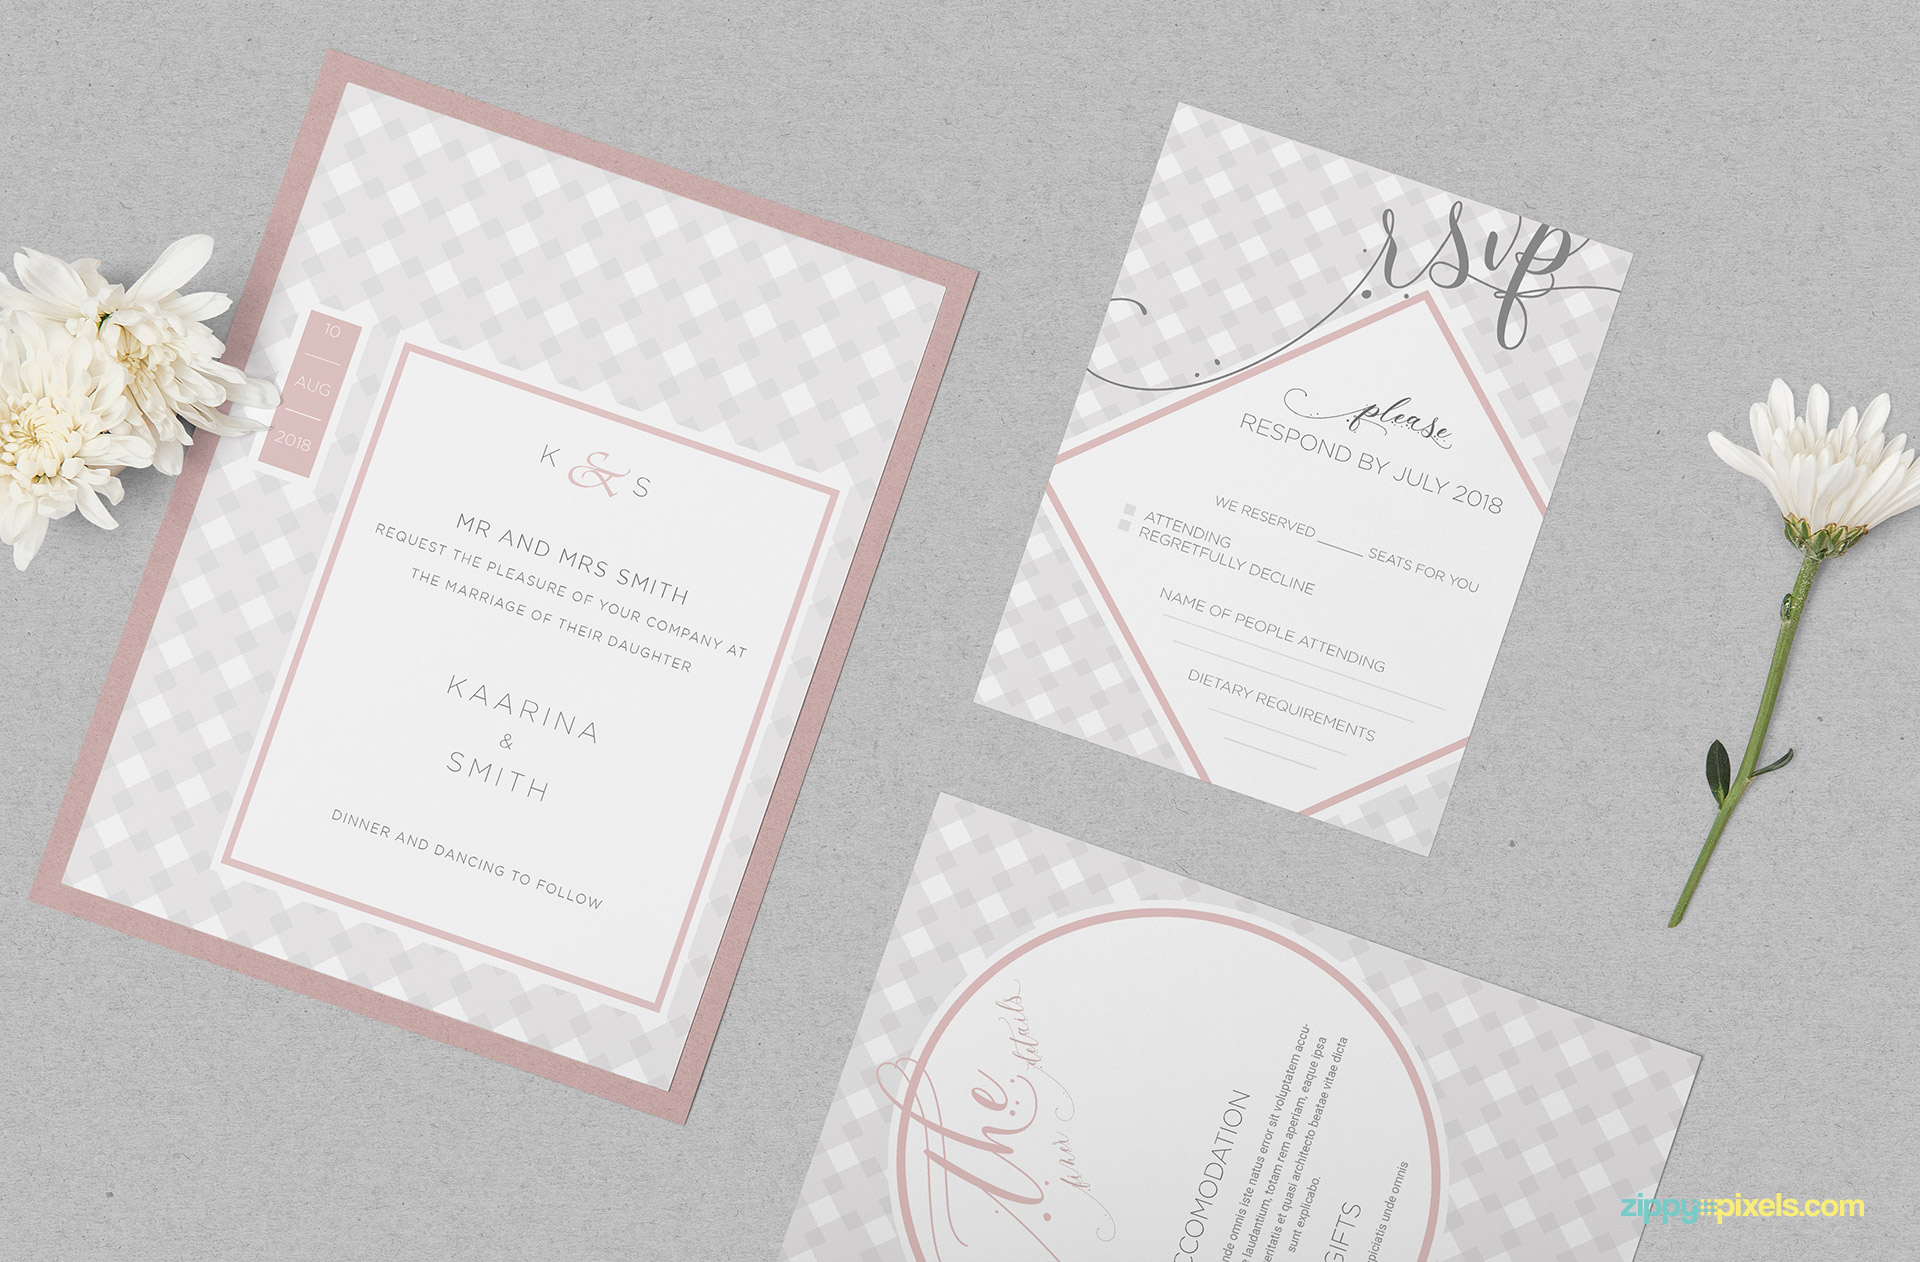 Gorgeous wedding invitation mockup PSD free.